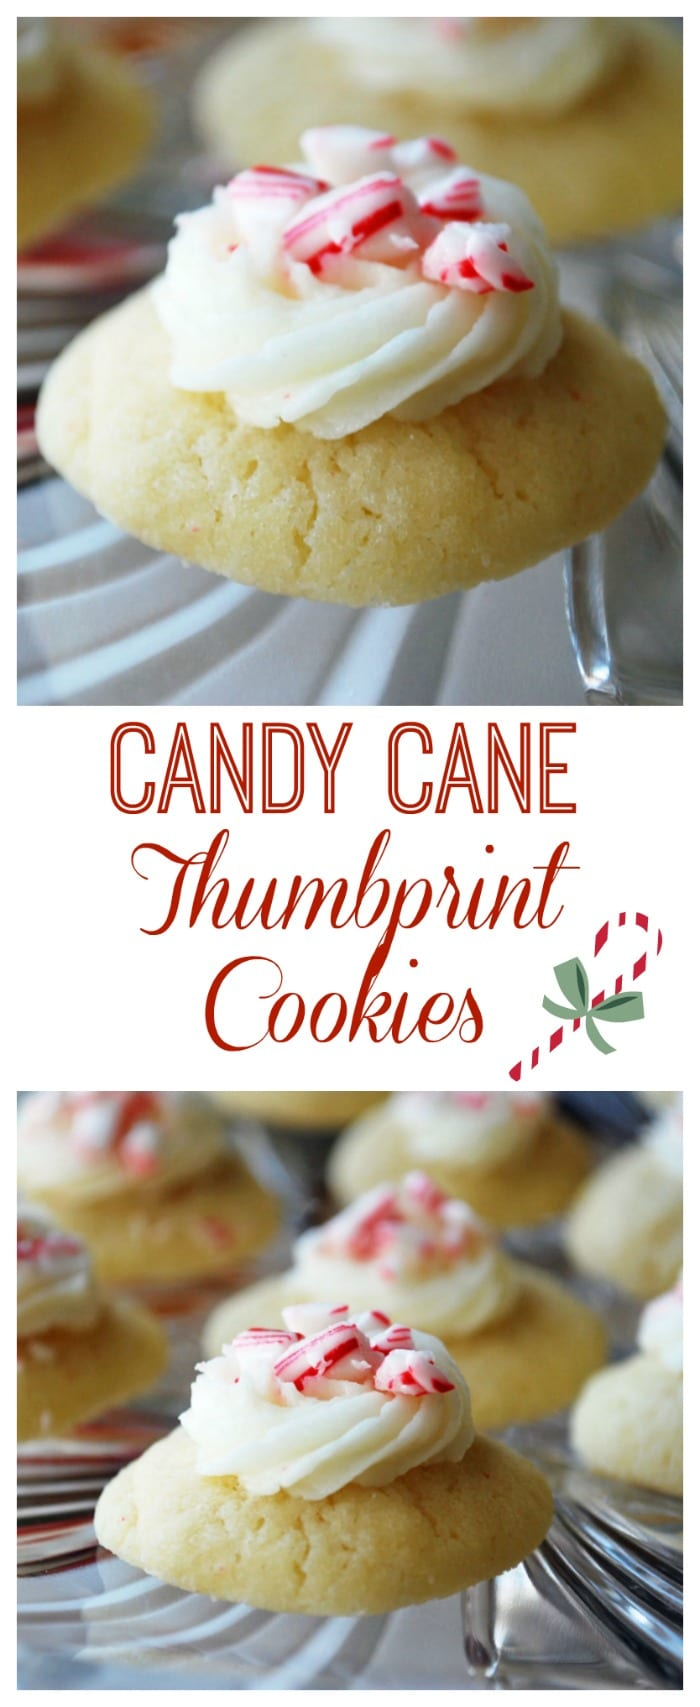 Candy Cane Thumbprint Cookies